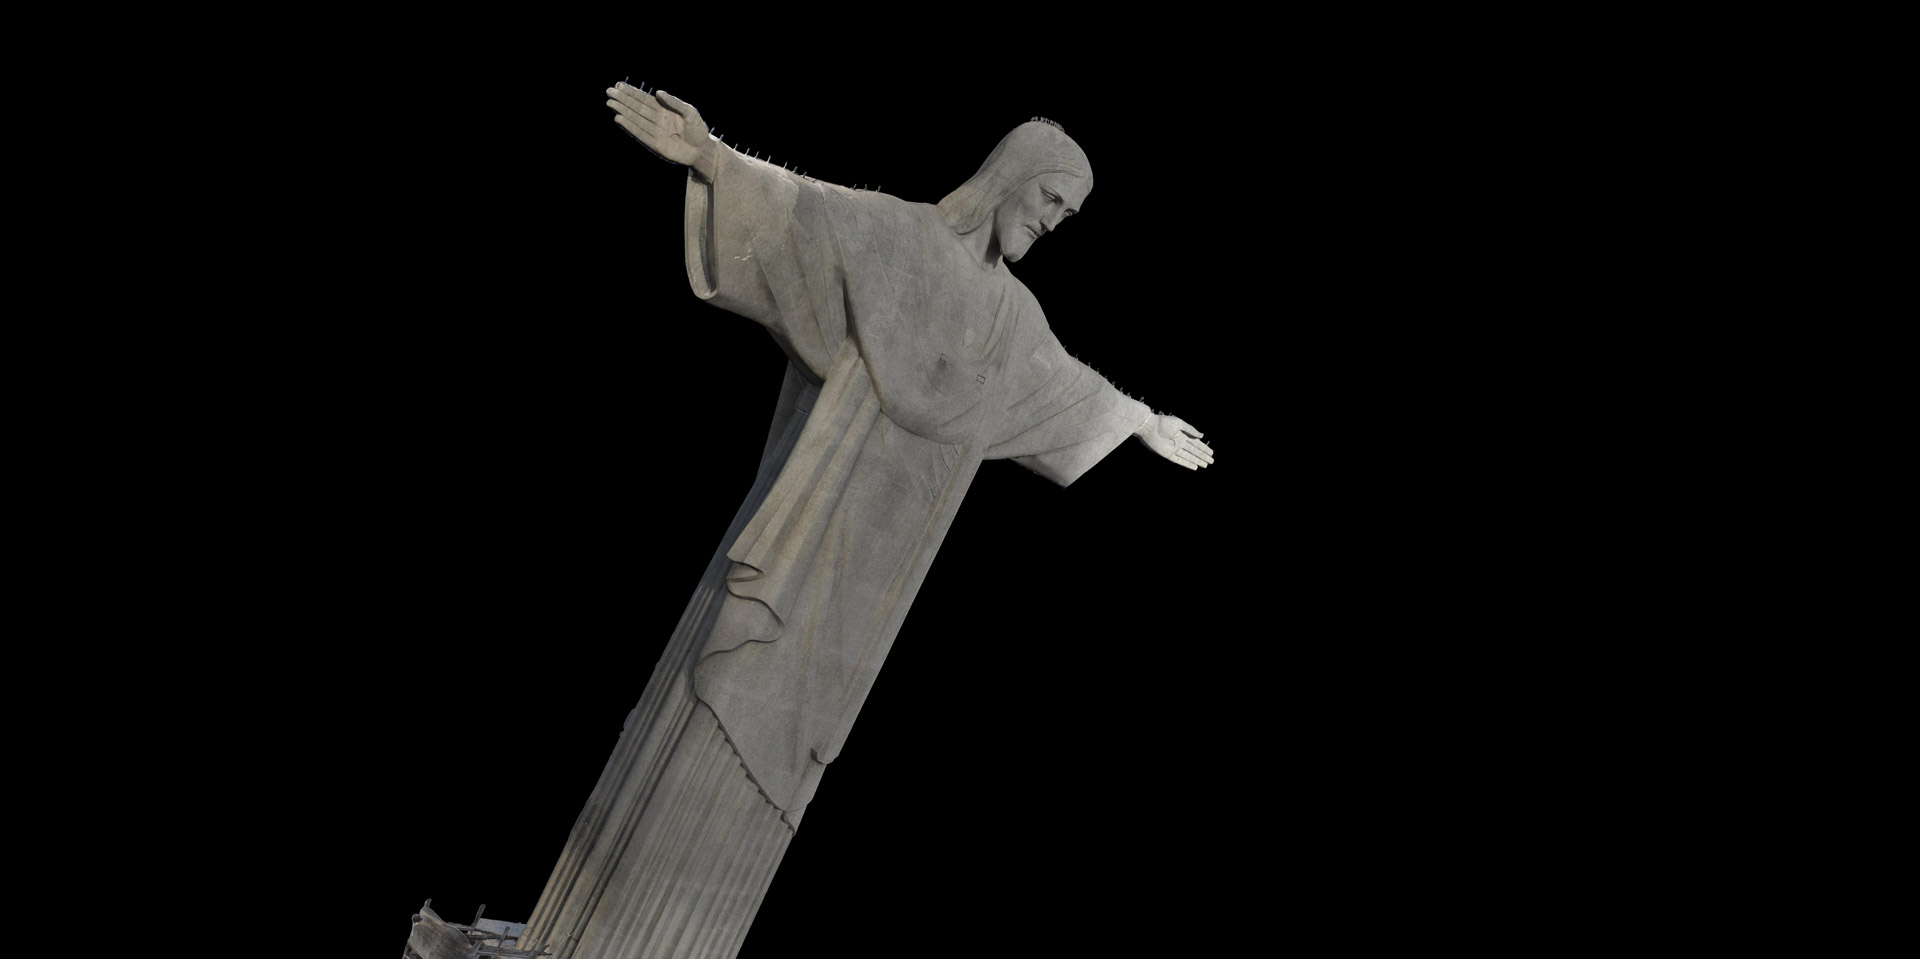 A 3D model of the statue of Christ the Redeemer